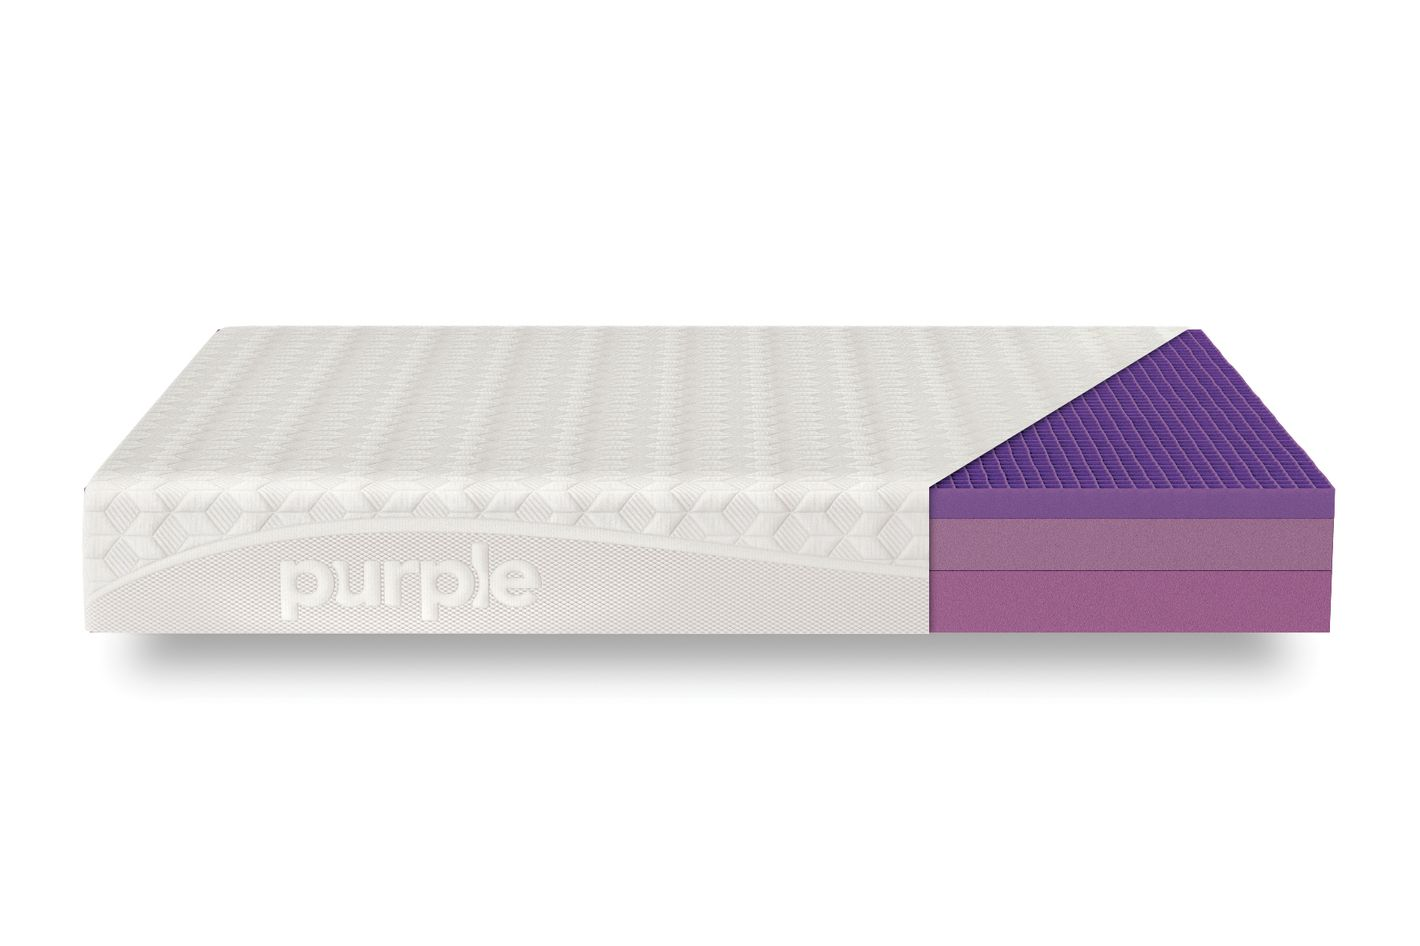 Purple mattress